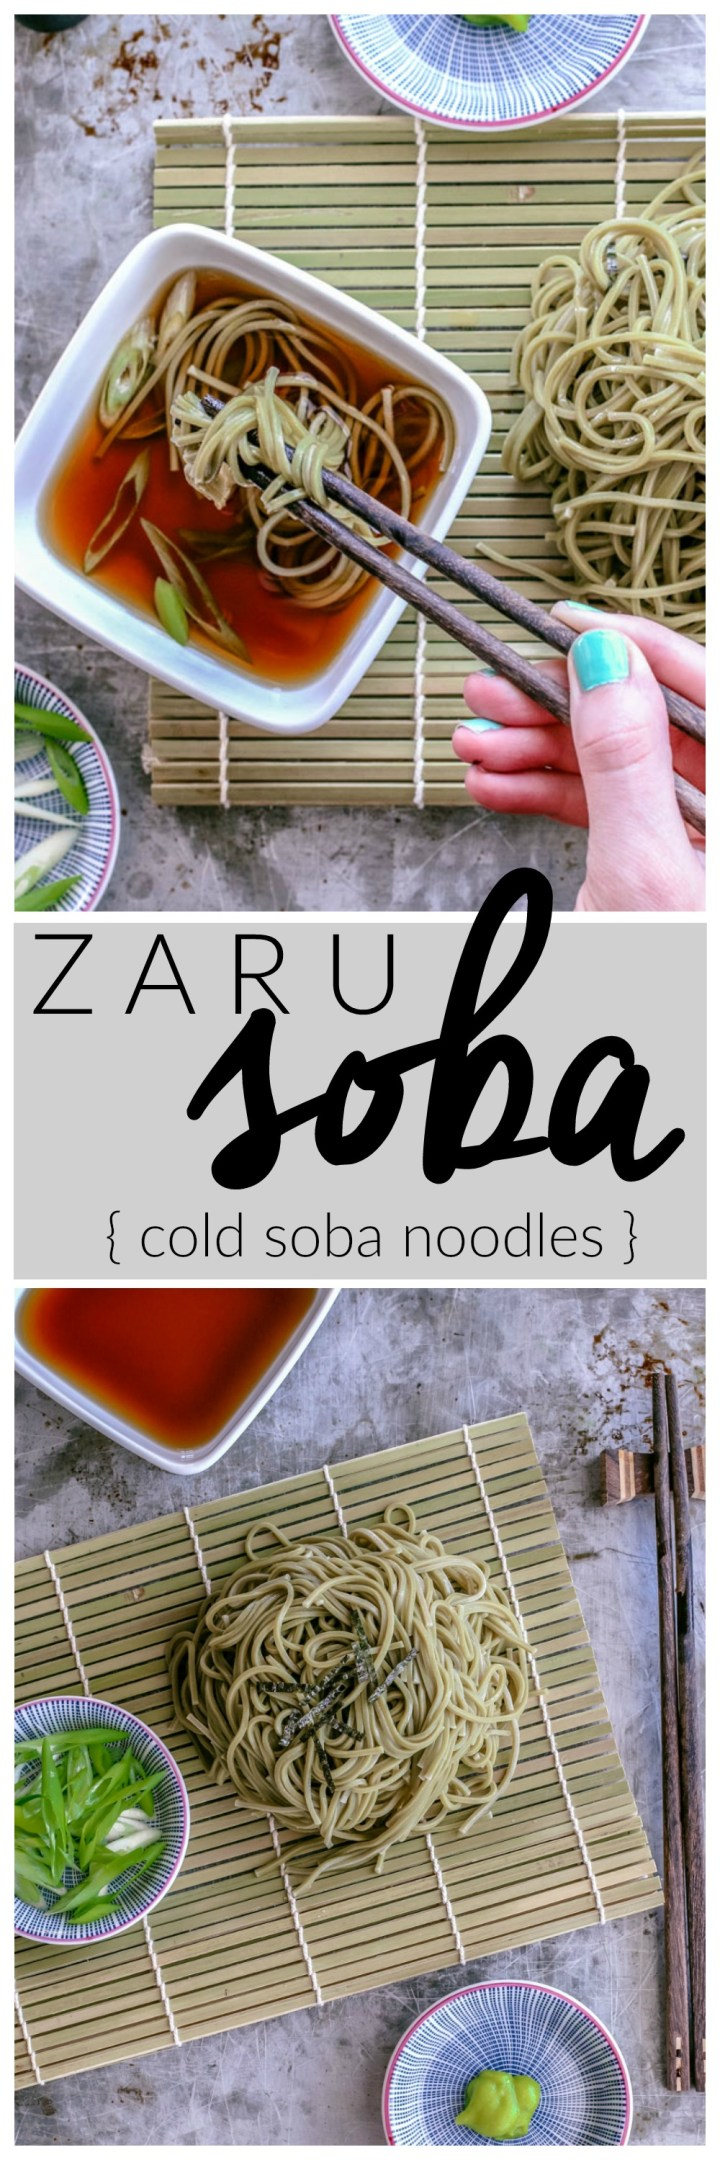 Zaru Soba { cold soba noodles } | Killing Thyme — This cool and simple Japanese dish is the perfect meal for those summer scorchers. Fill your belly and cool down at the same time with this slurp-worthy dish!